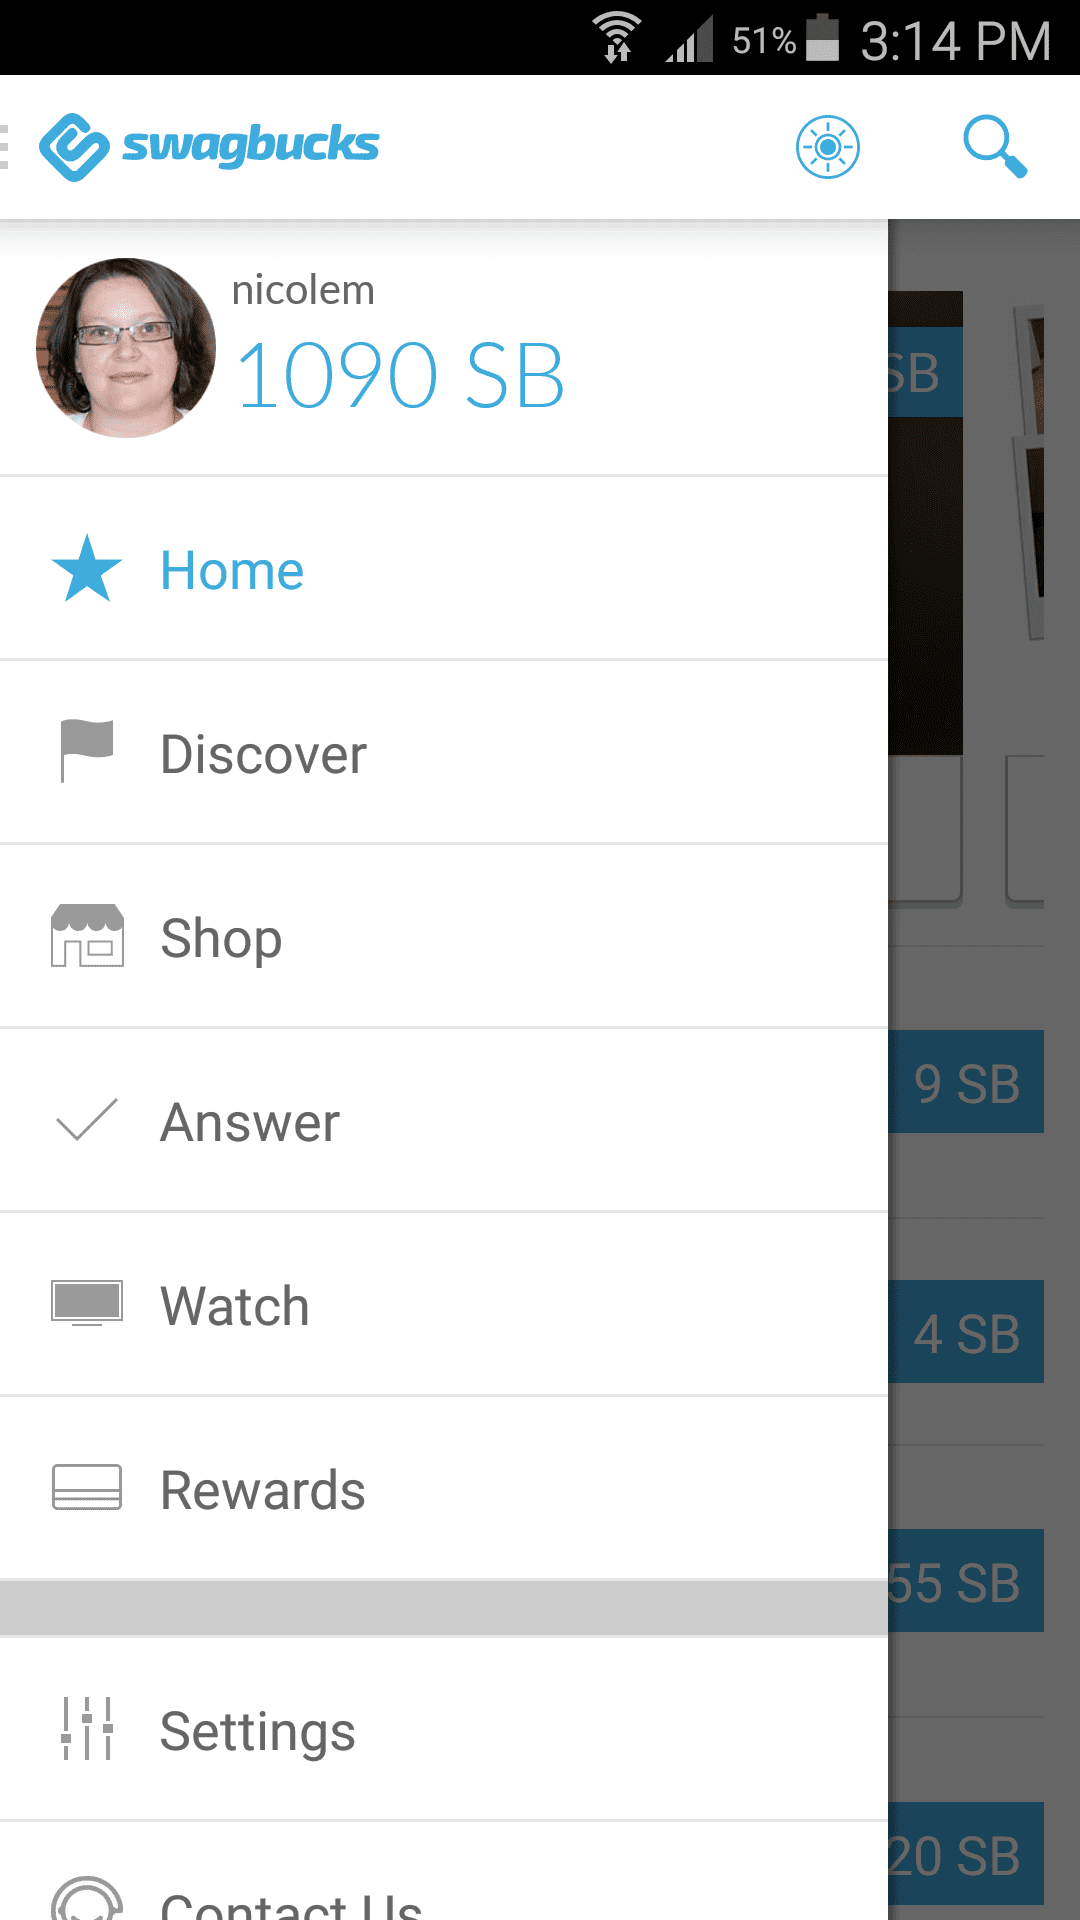 One of the Swagbucks apps